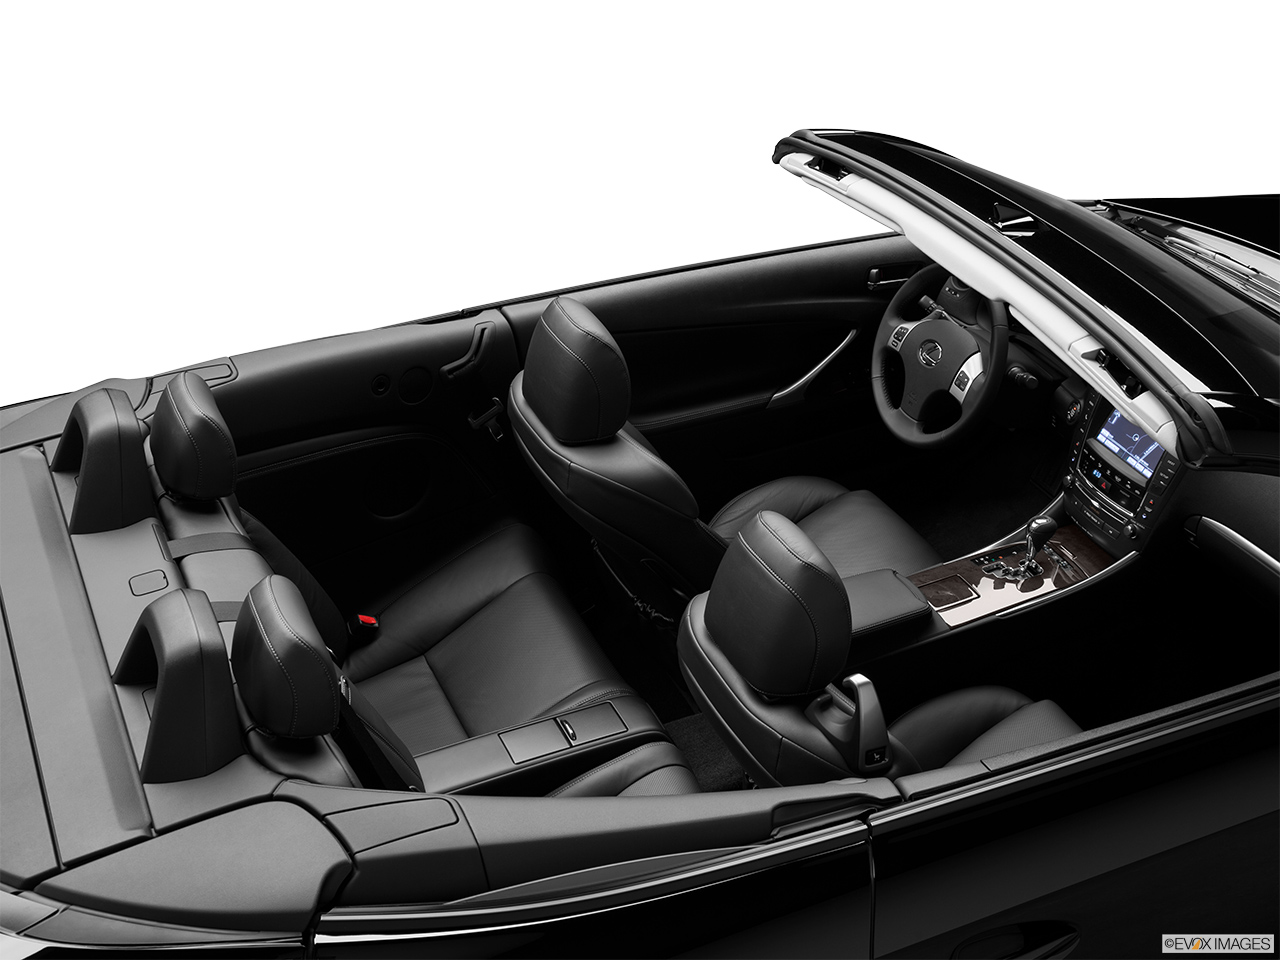 2013 Lexus IS 250C IS 250 C RWD Convertible Hero (high from passenger, looking down into interior).